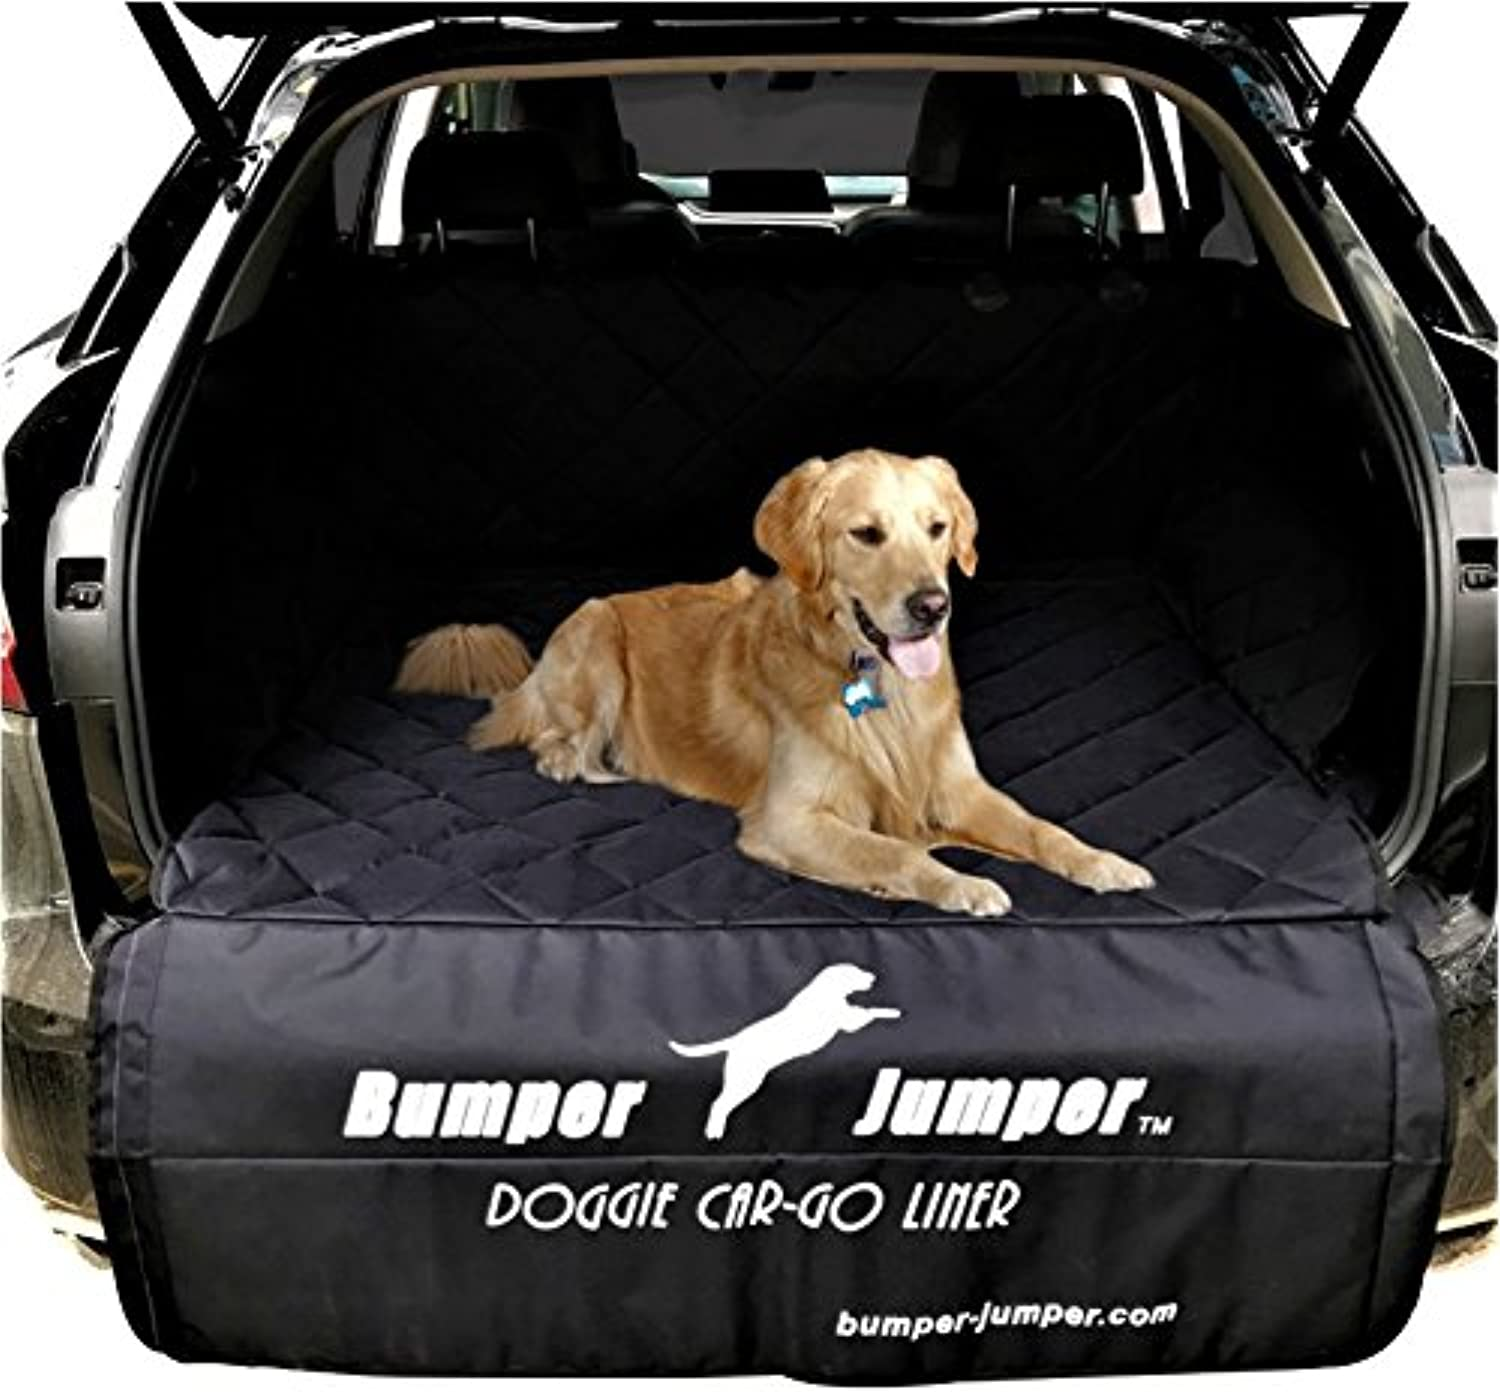 Bumper Jumper  Deluxe Doggie SUV Cargo Trunk Liner Cover, DEEP Plush Quilted, Water Proof, Washable, Non Slip Backing, FITS Most SUVs, Predects Bumper from Doggie Scratches. (Measure Your Vehicle)